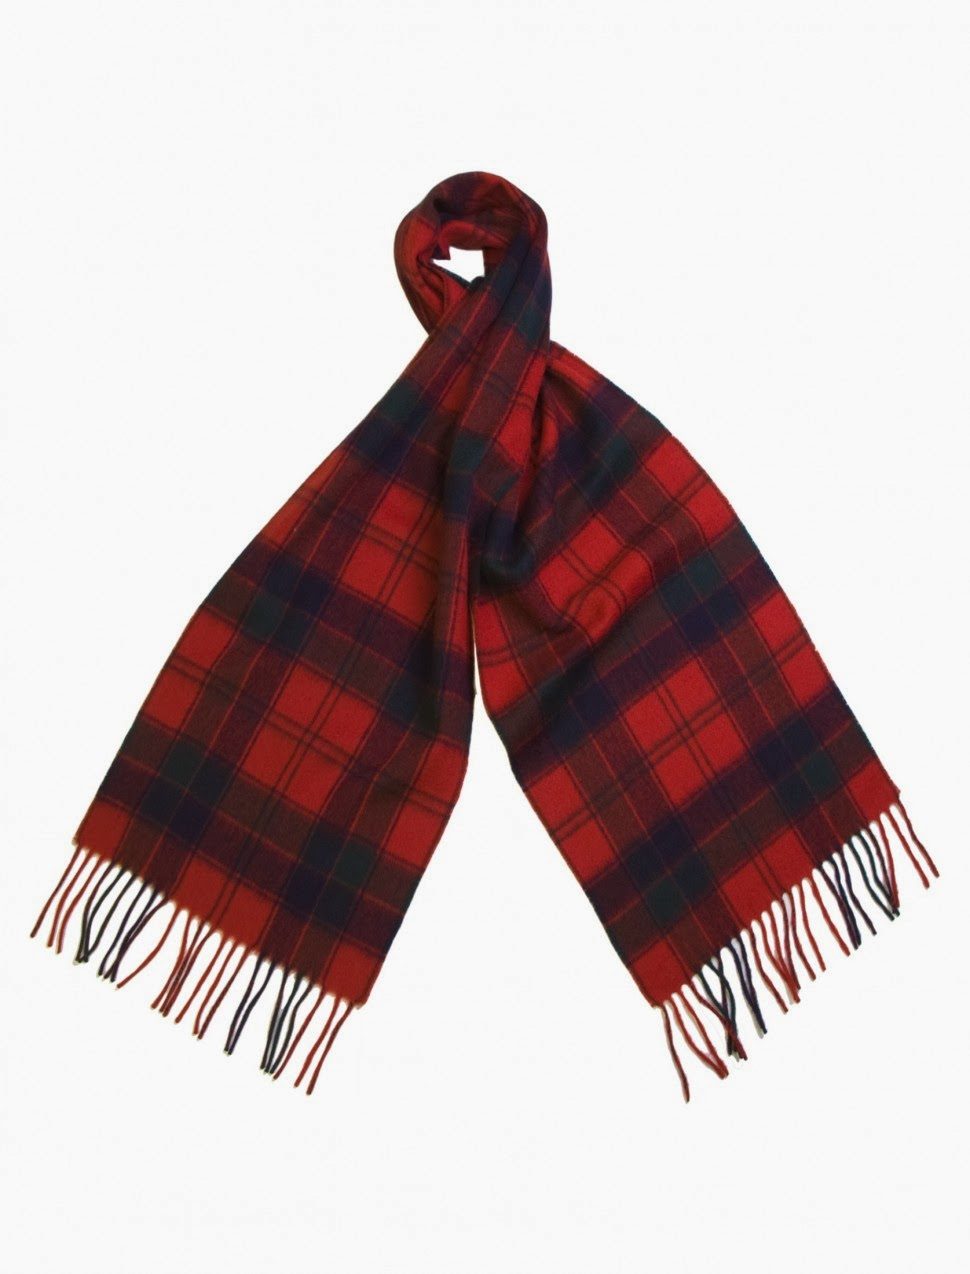 Lamb Wool Scarf, £12 or 2 for £20 at The Edingburgh Woollen Mill